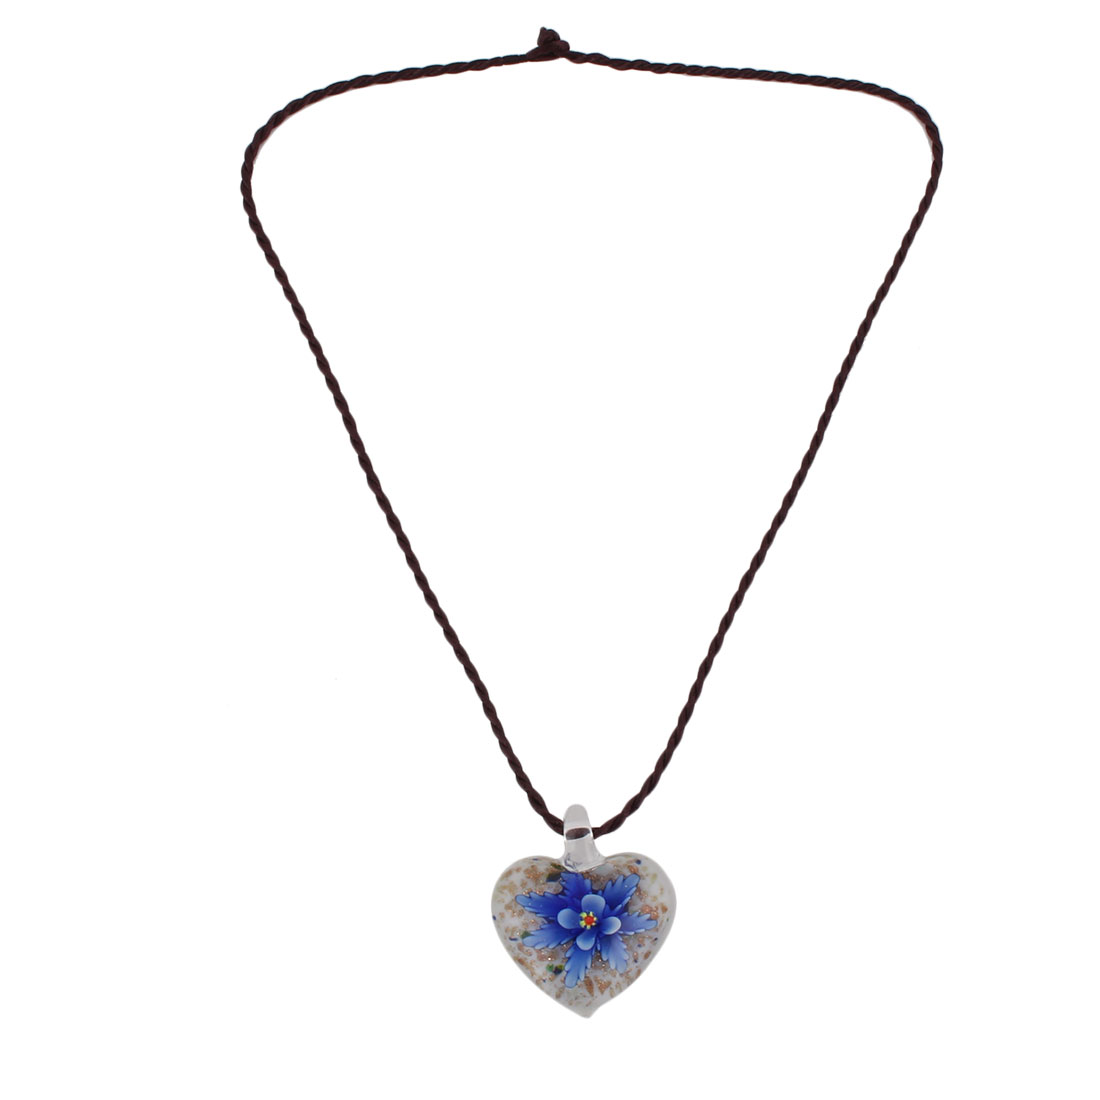 Home Ladies Glass Flower Pattern Heart Shaped Pendant Neck Ornament Necklace Blue